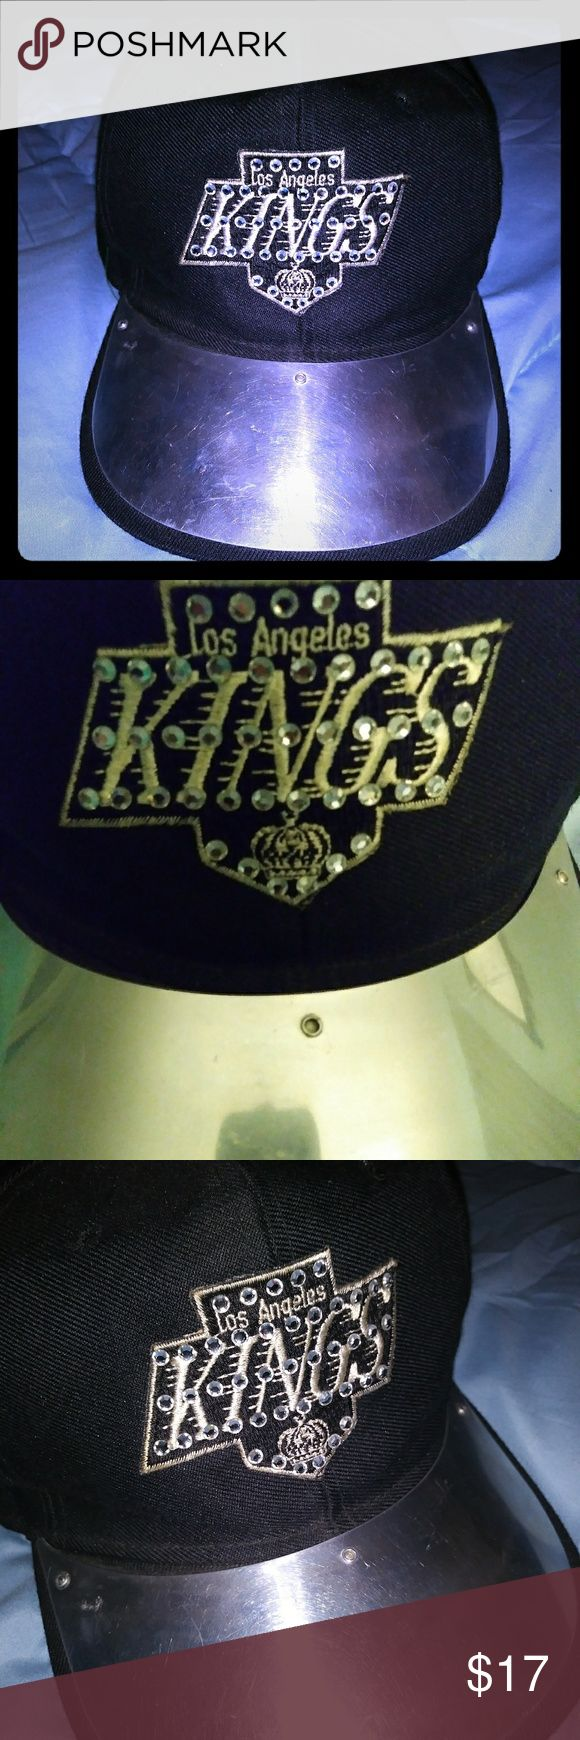 90's Metal Rim LA Kings Cap Rare Vintage 90's LA Kings baseball Cap, Metal Rim & Rhinestone Bedazzled. You can't find these in the stores anymore. Good used condition, a few stitches popped on the side, see pic 4 Accessories Hats